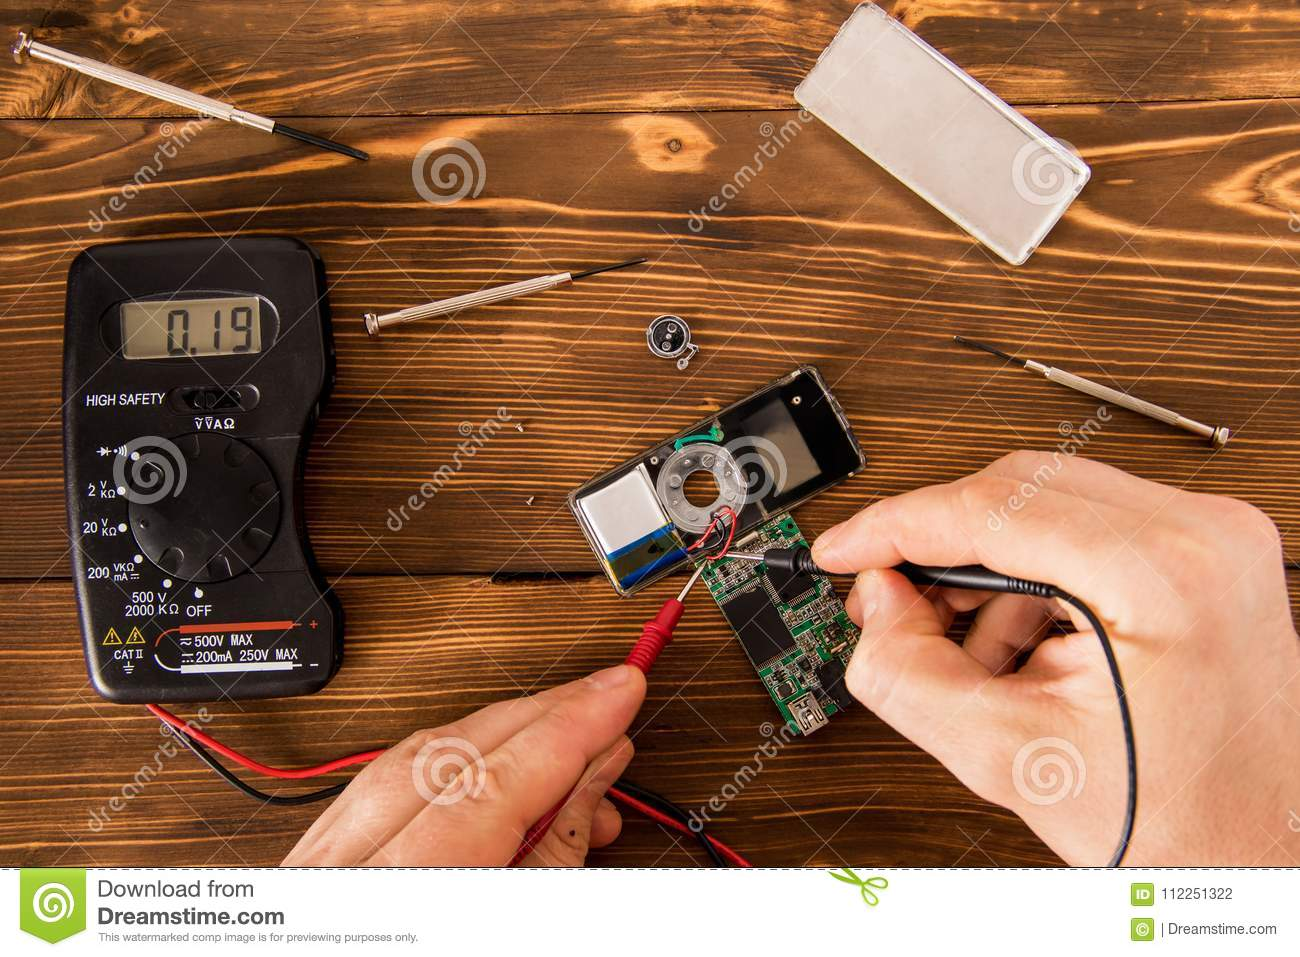 Testing And Repair The Chip For Service By Means Of A Tester ... on tube dimensions, tube assembly, tube fuses, tube terminals,